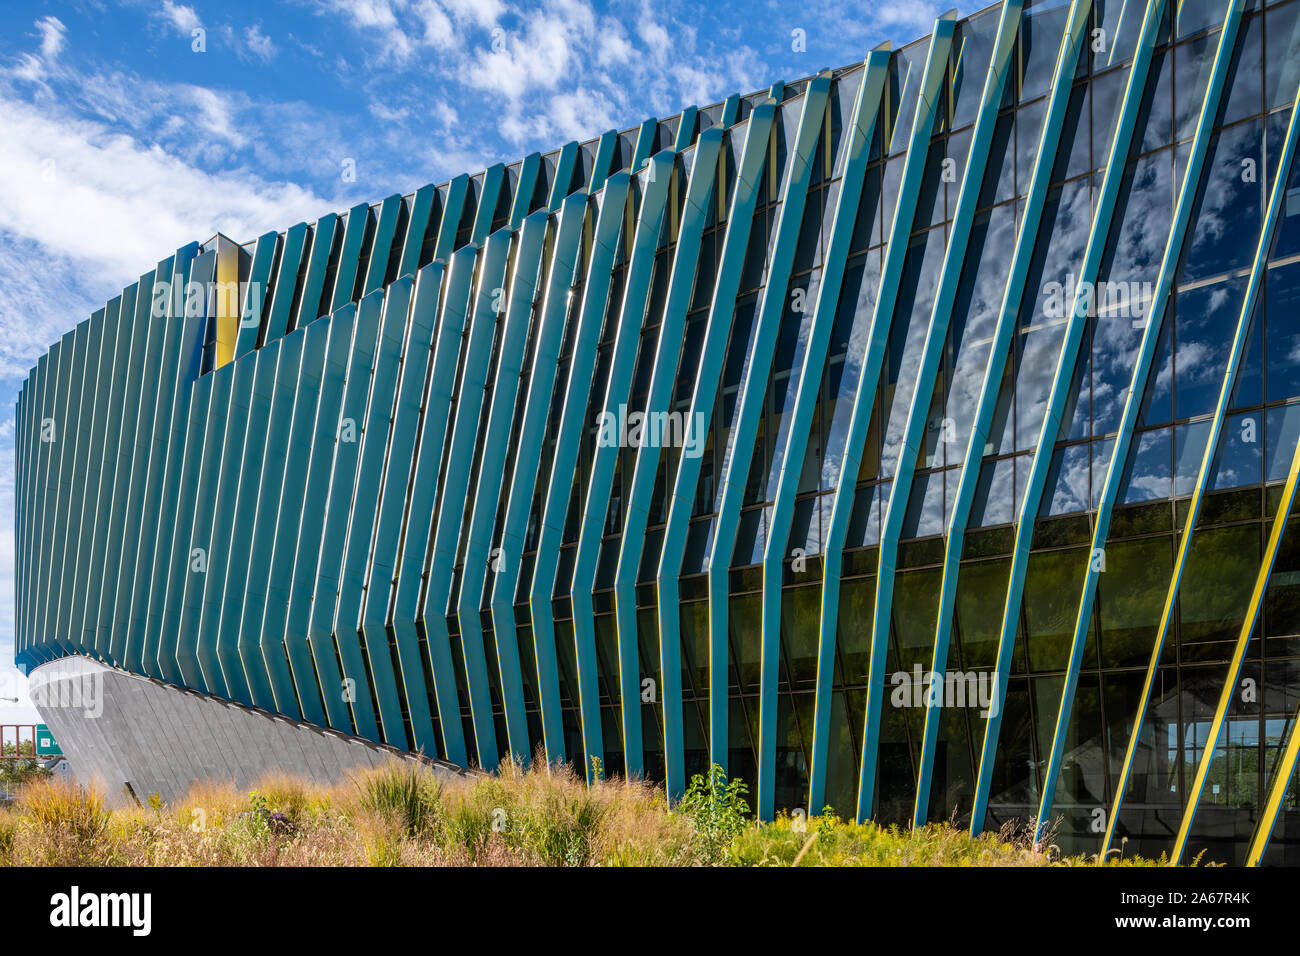 El Centro location of Northeastern Illinois University, designed by JGMA. Stock Photo